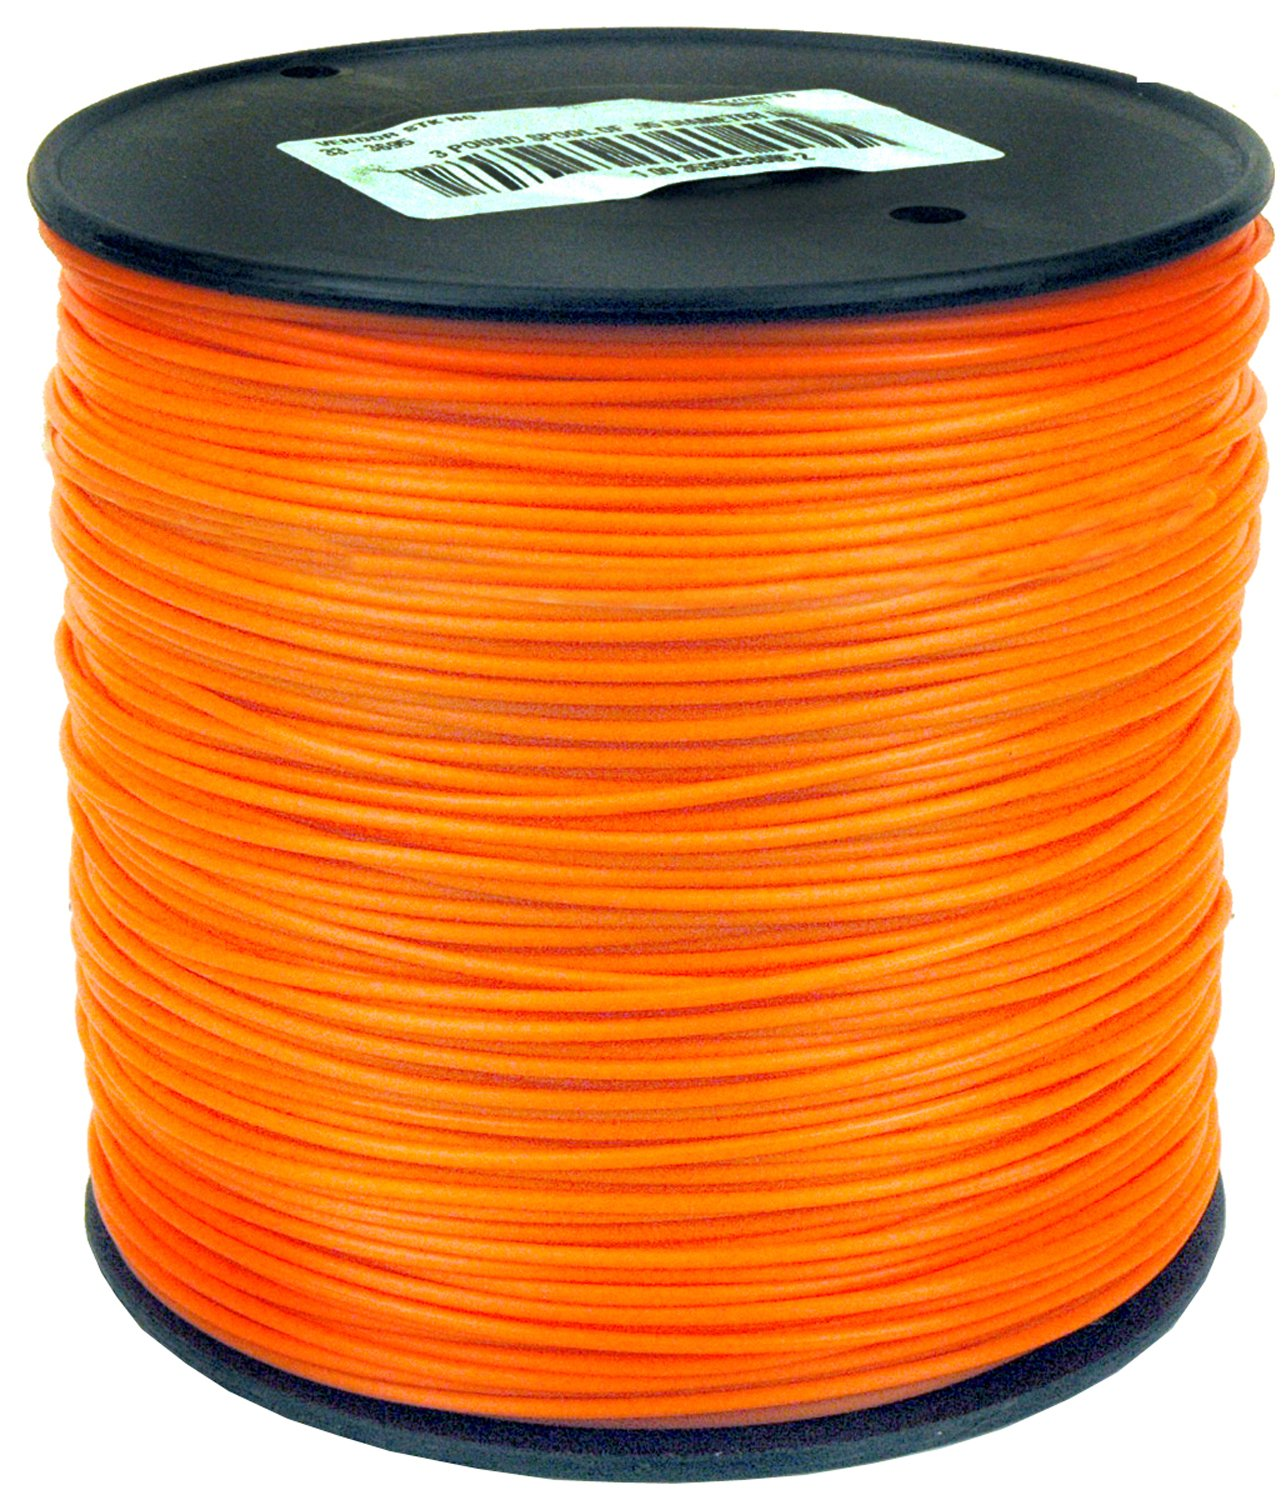 Maxpower 333695 Residential 095 Inch 855 Foot